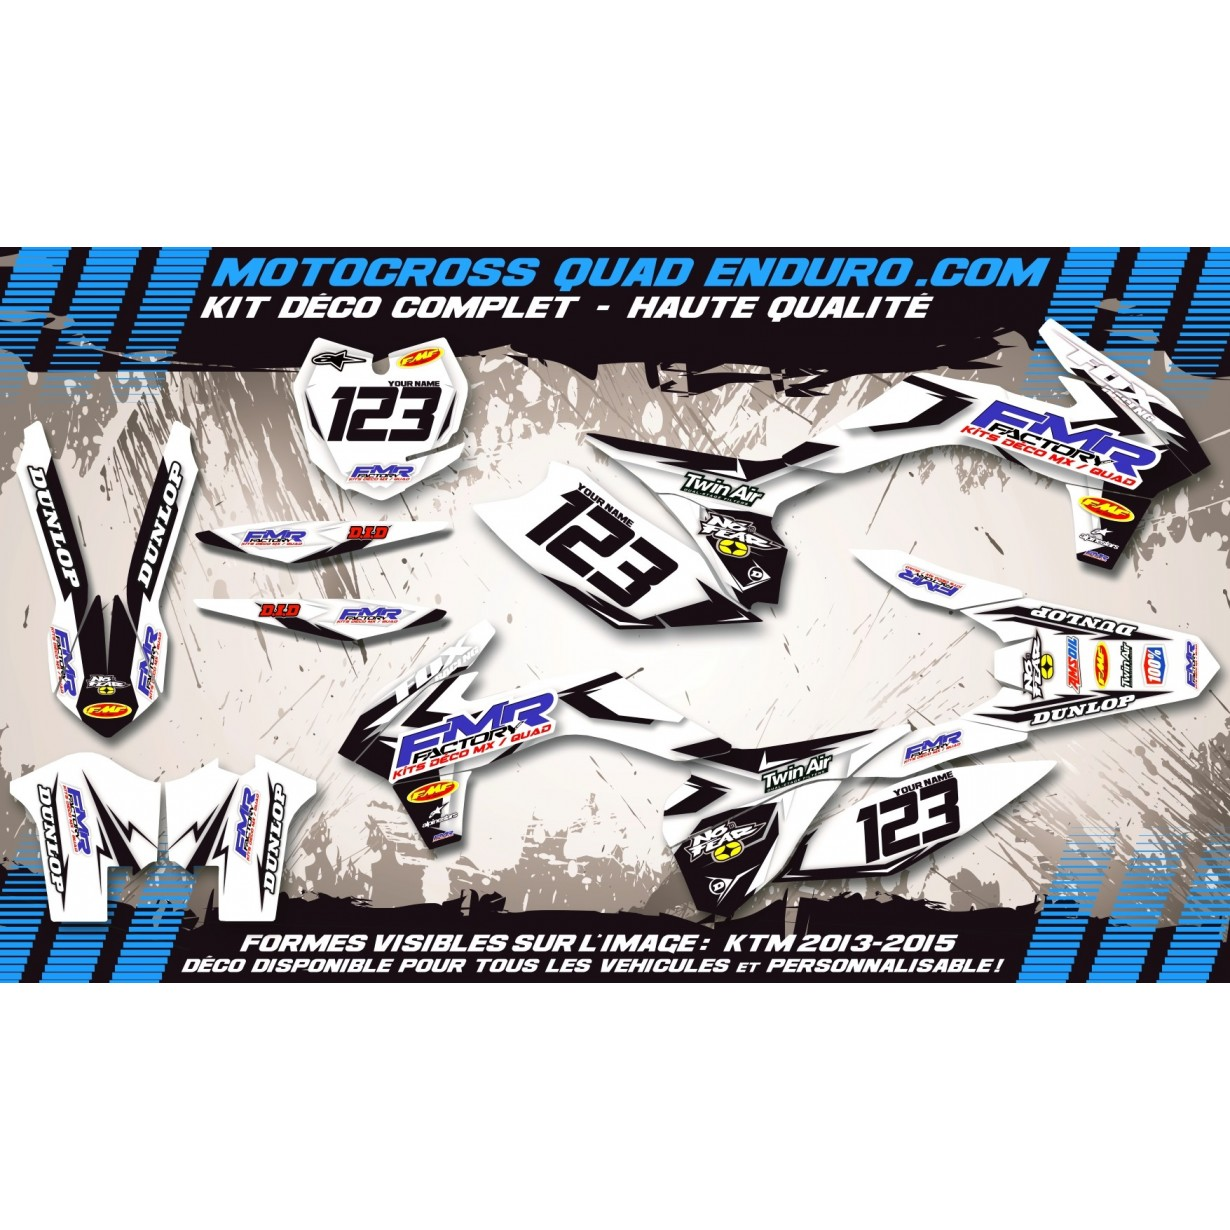 KIT DÉCO Perso 660 RAPTOR Quad Fmr factory WT Edition MA13WT